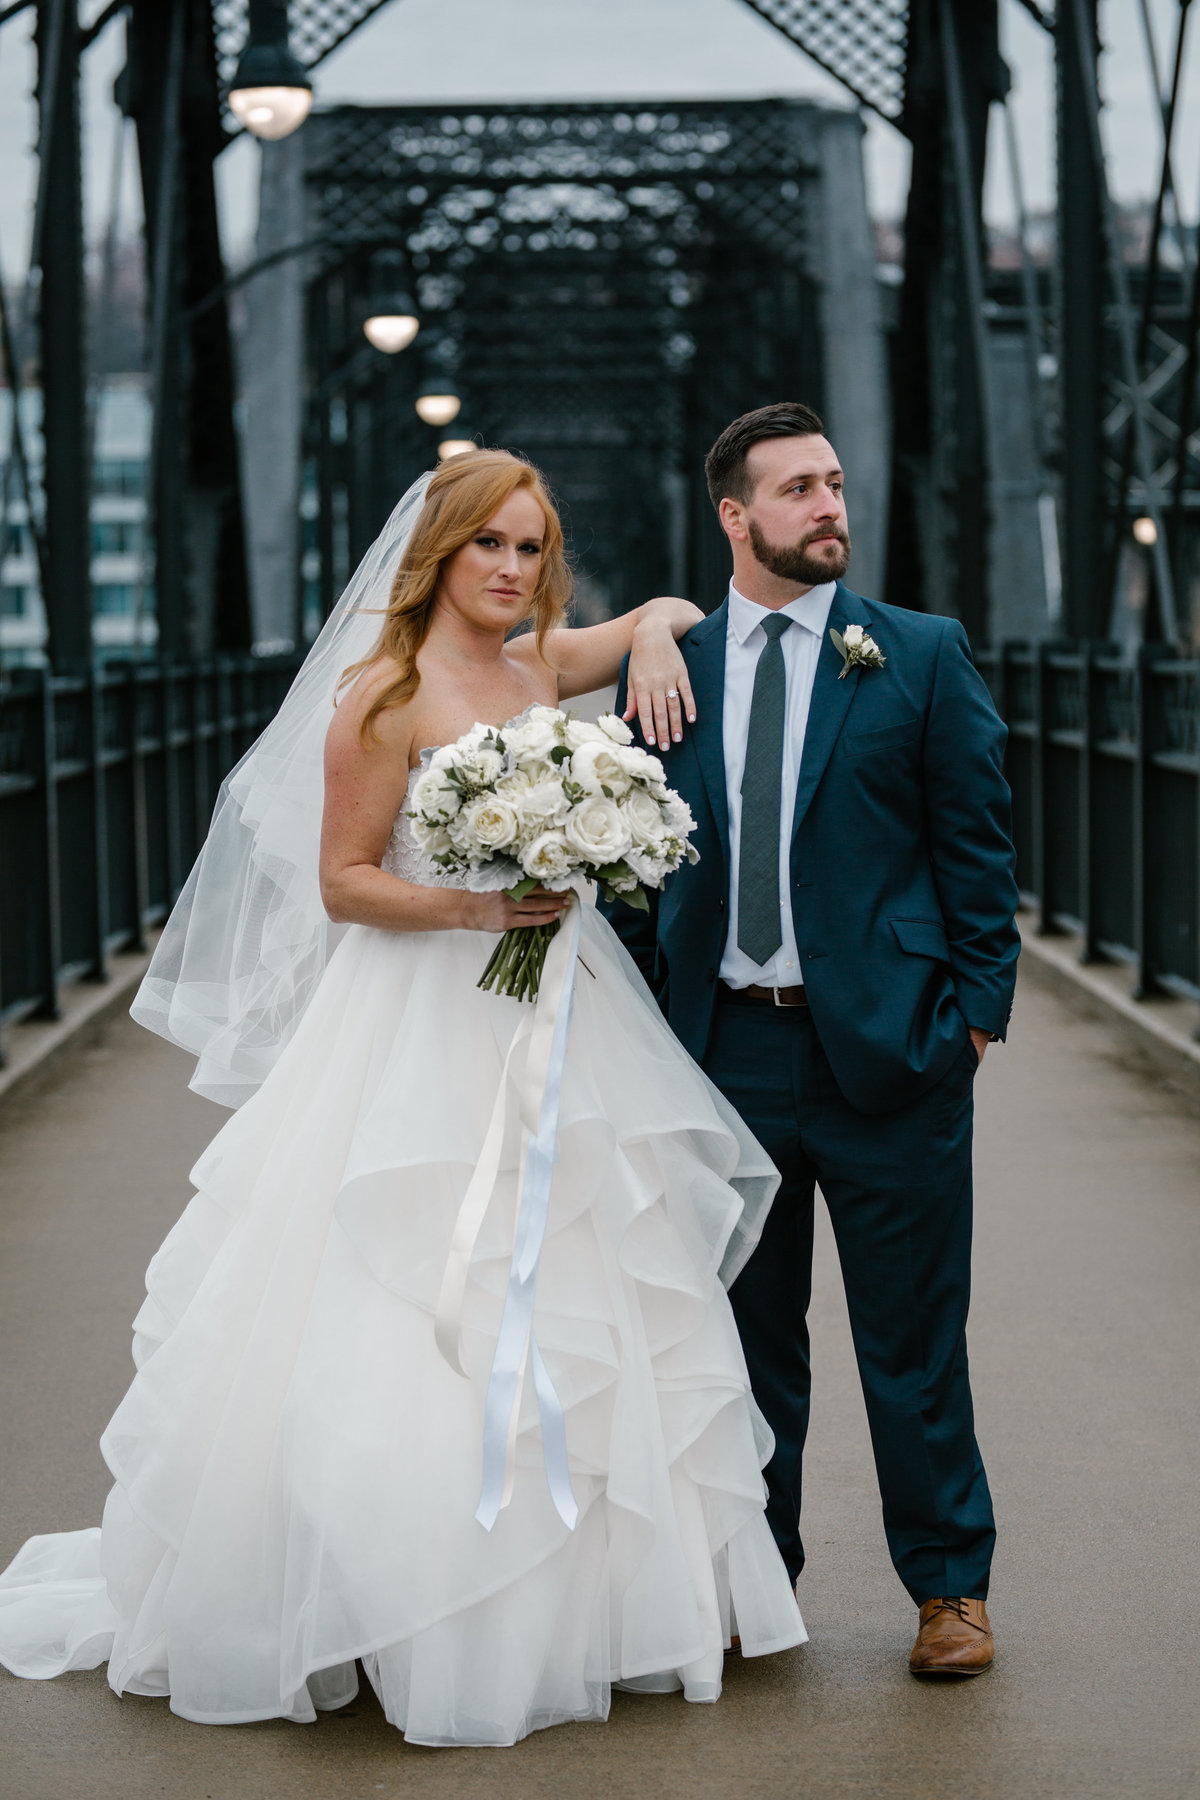 Unique pgh wedding photography41